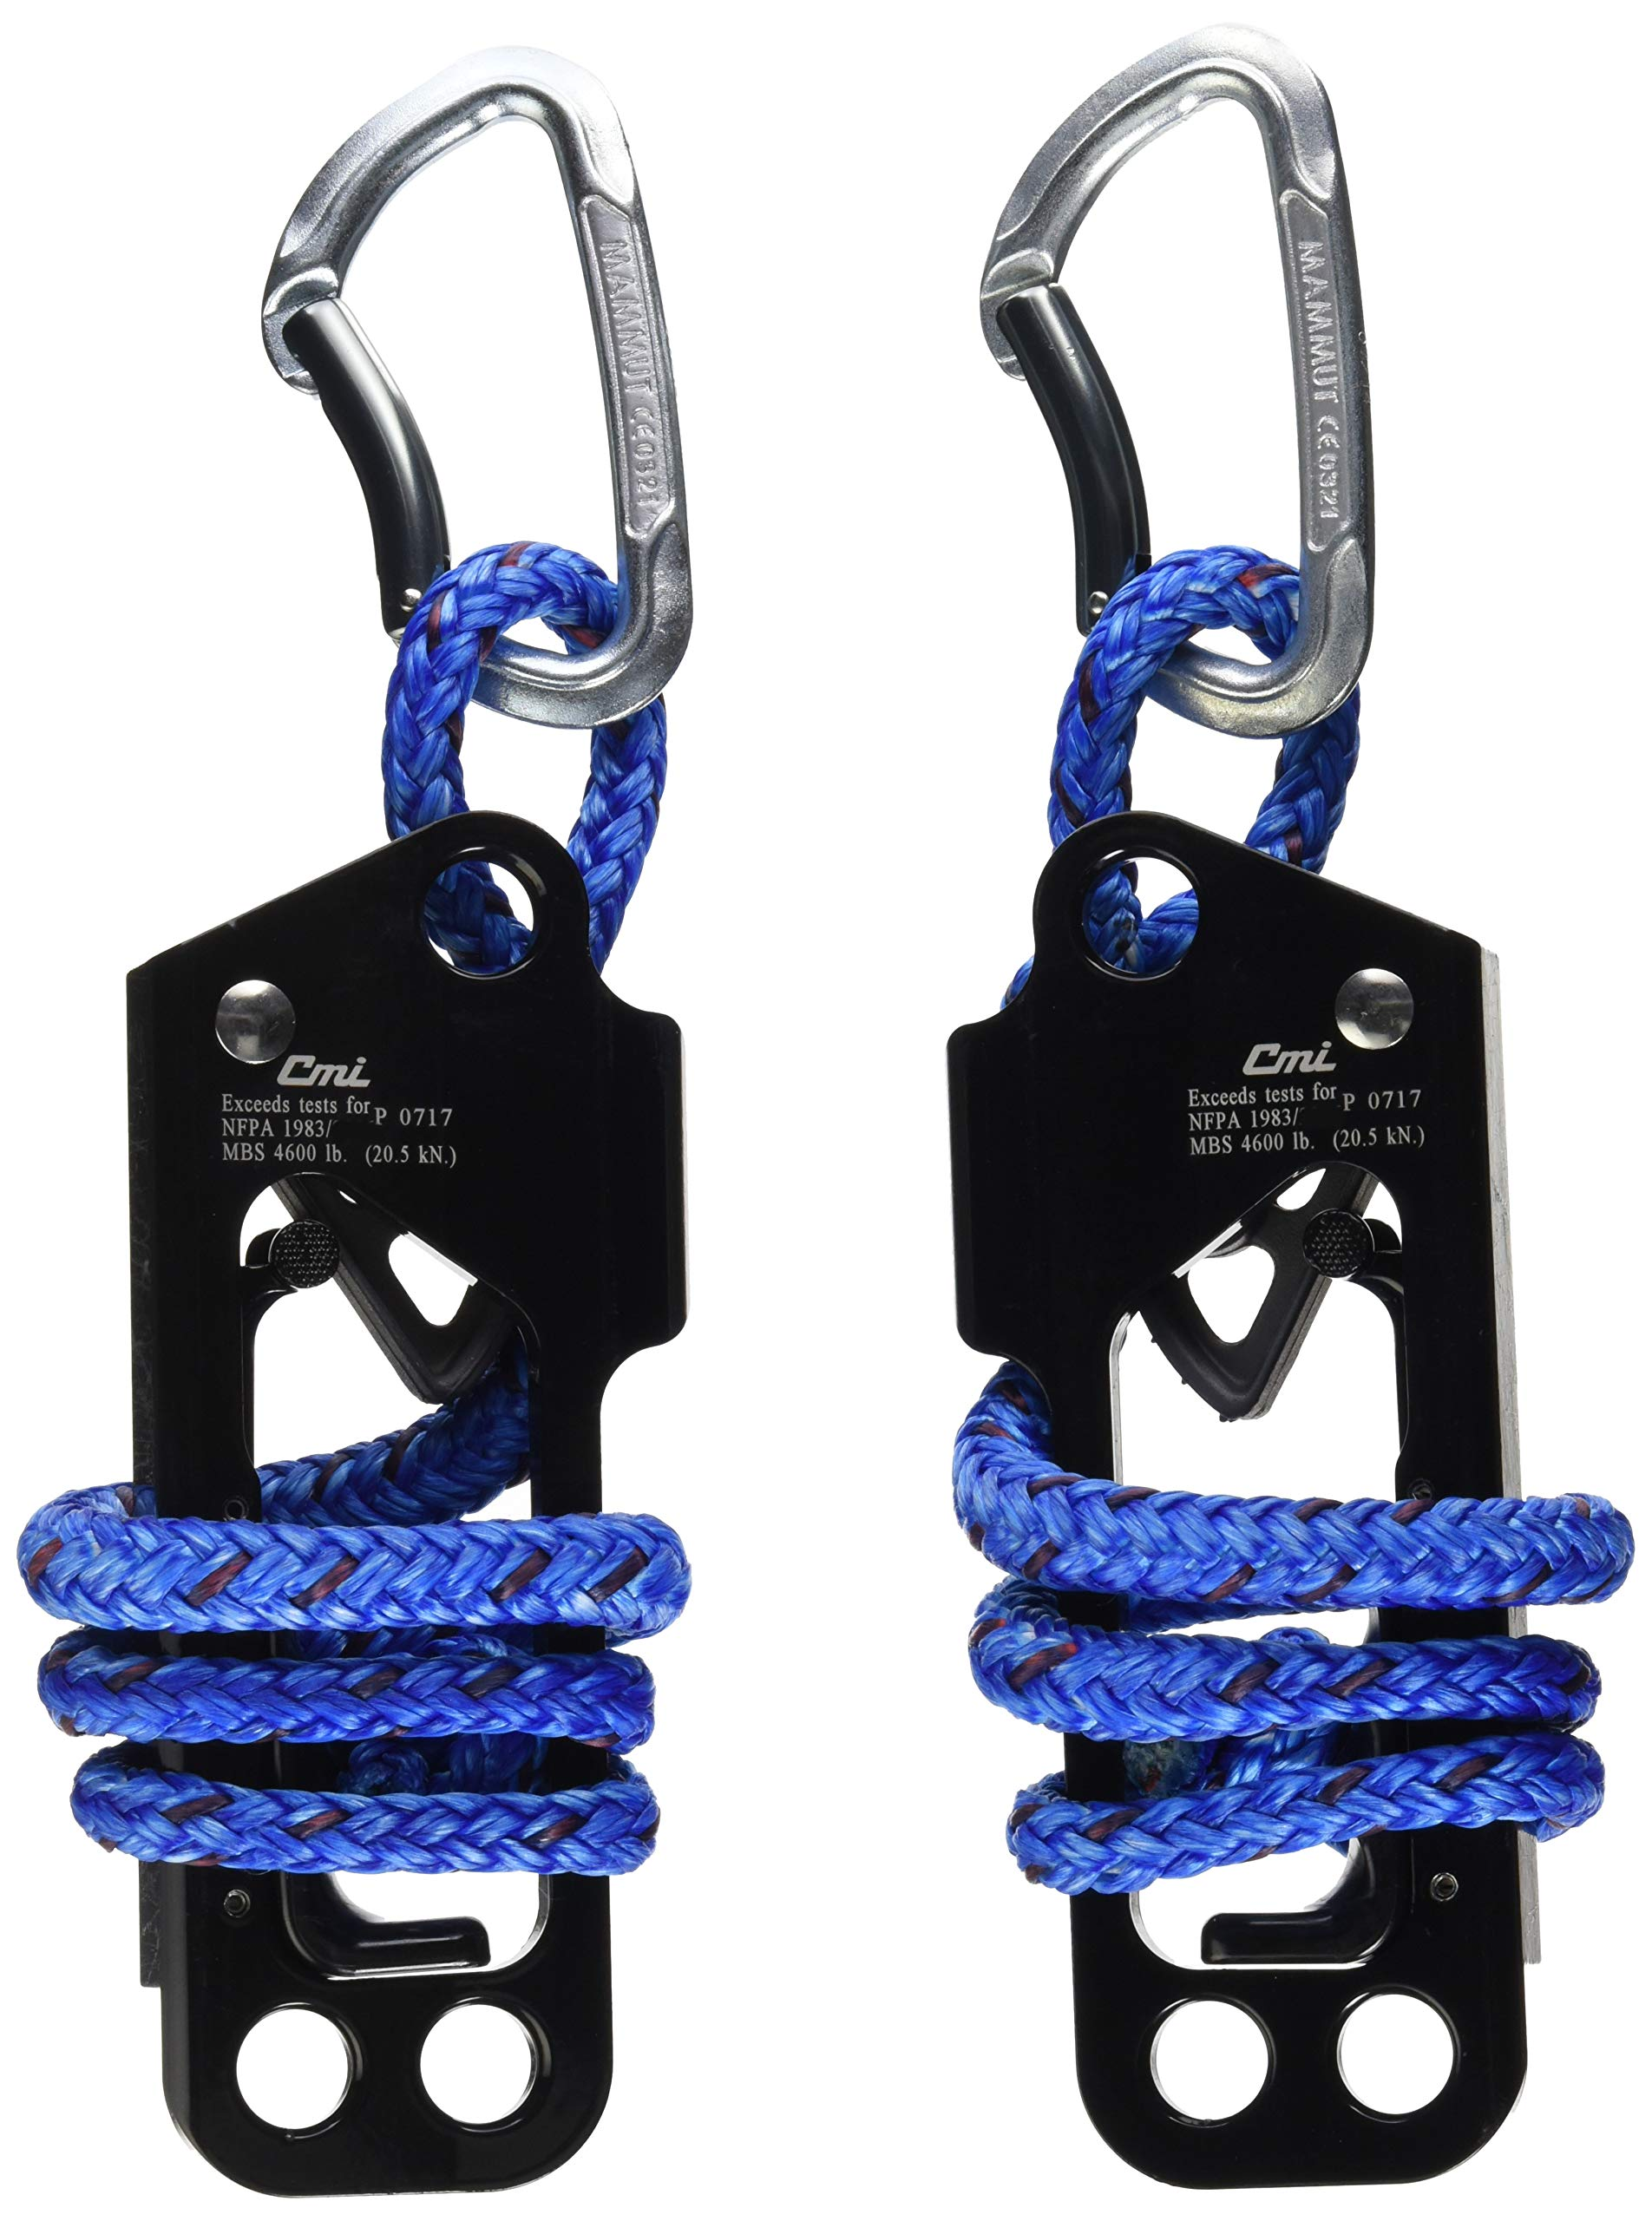 Tumble Forms 2 Deluxe Vestibulator II System, Replacement Ropes with 2 Ascenders & 2 Carabiners, Accessory for Sensory Integration Therapy Equipment, Enhance Spatial Awareness, Balance & Movement